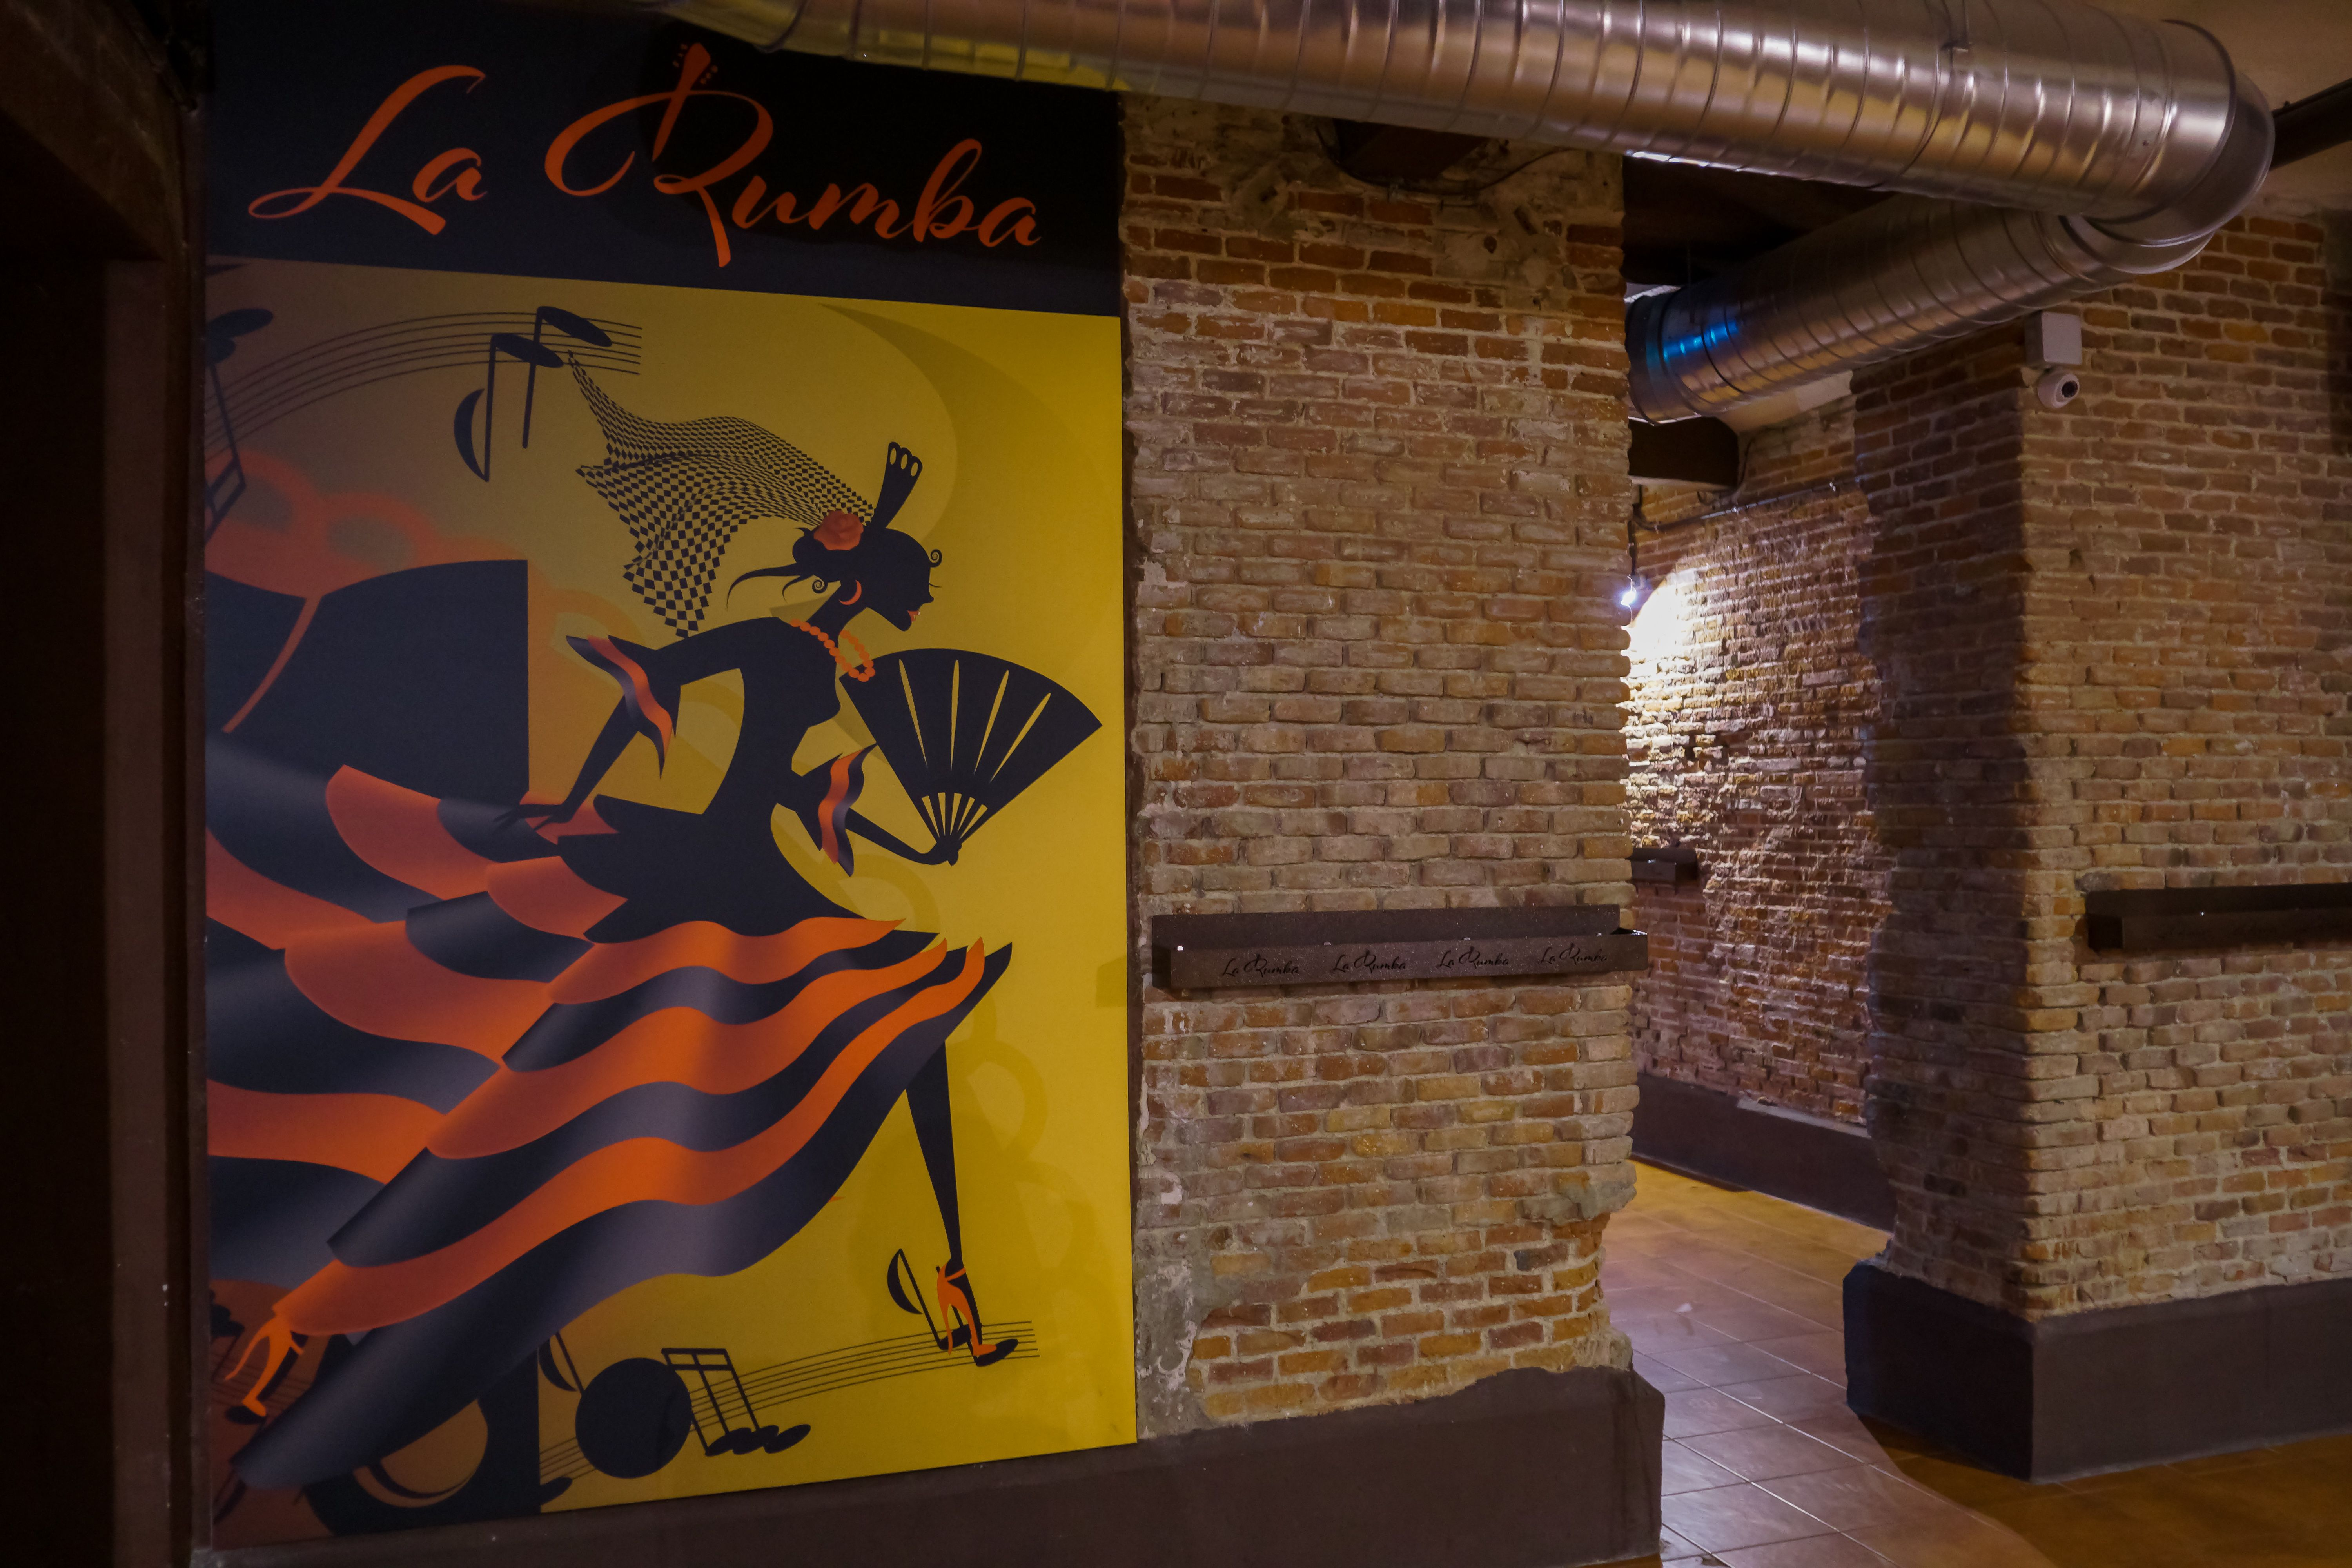 Restaurantes con espectáculo de flamenco en Madrid